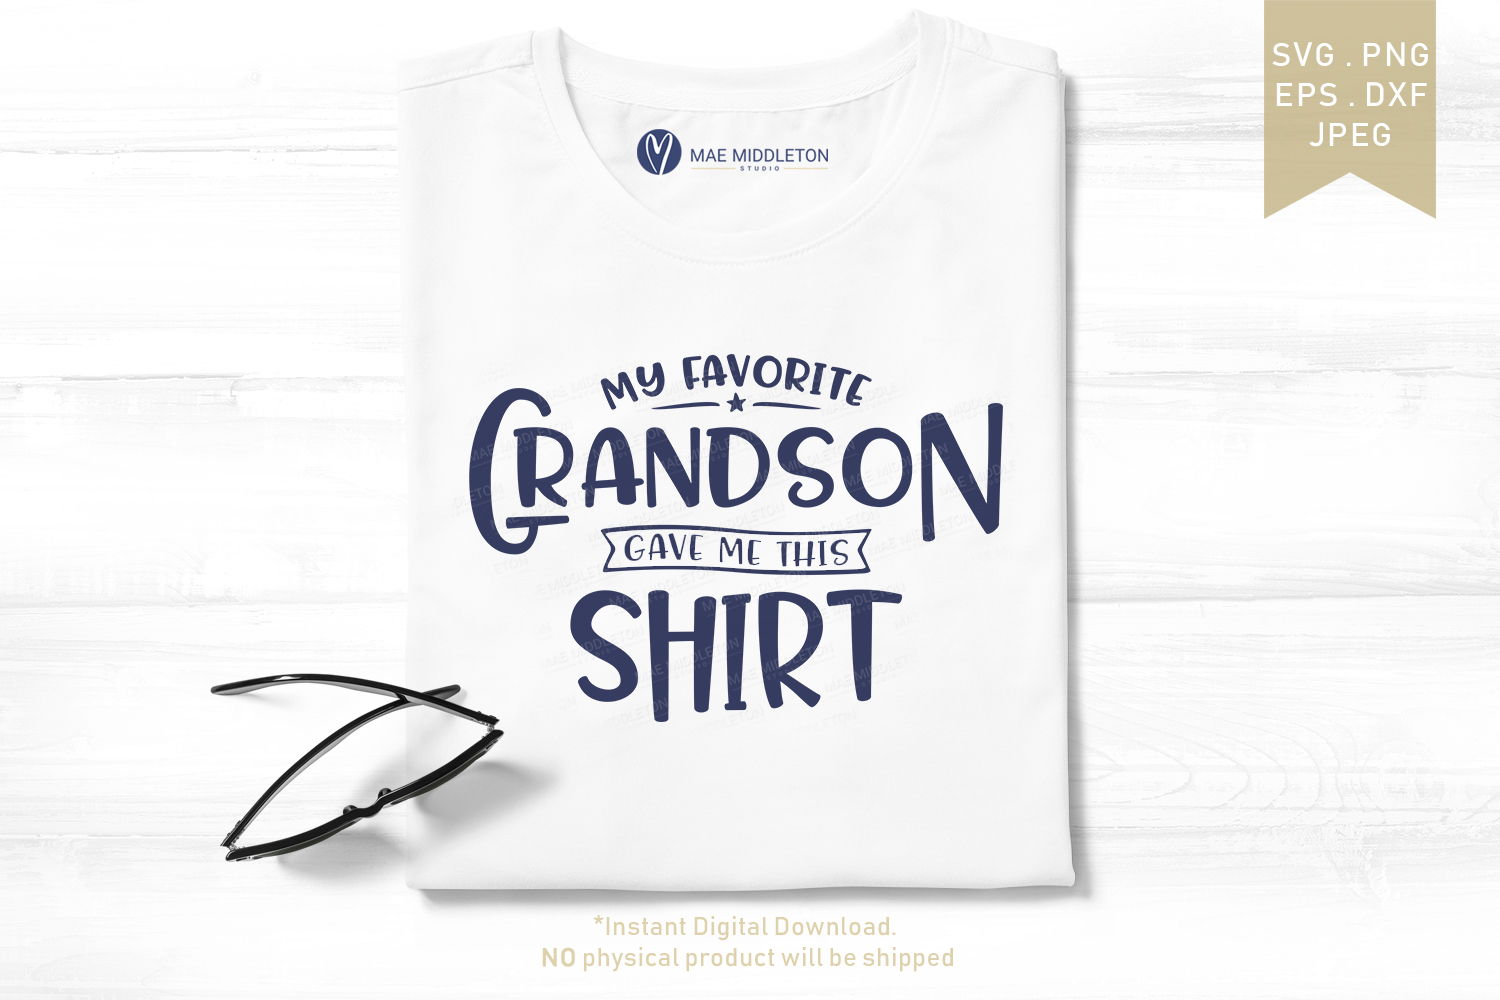 My Favorite... Gave Me This Shirt SVG Bundle example image 3